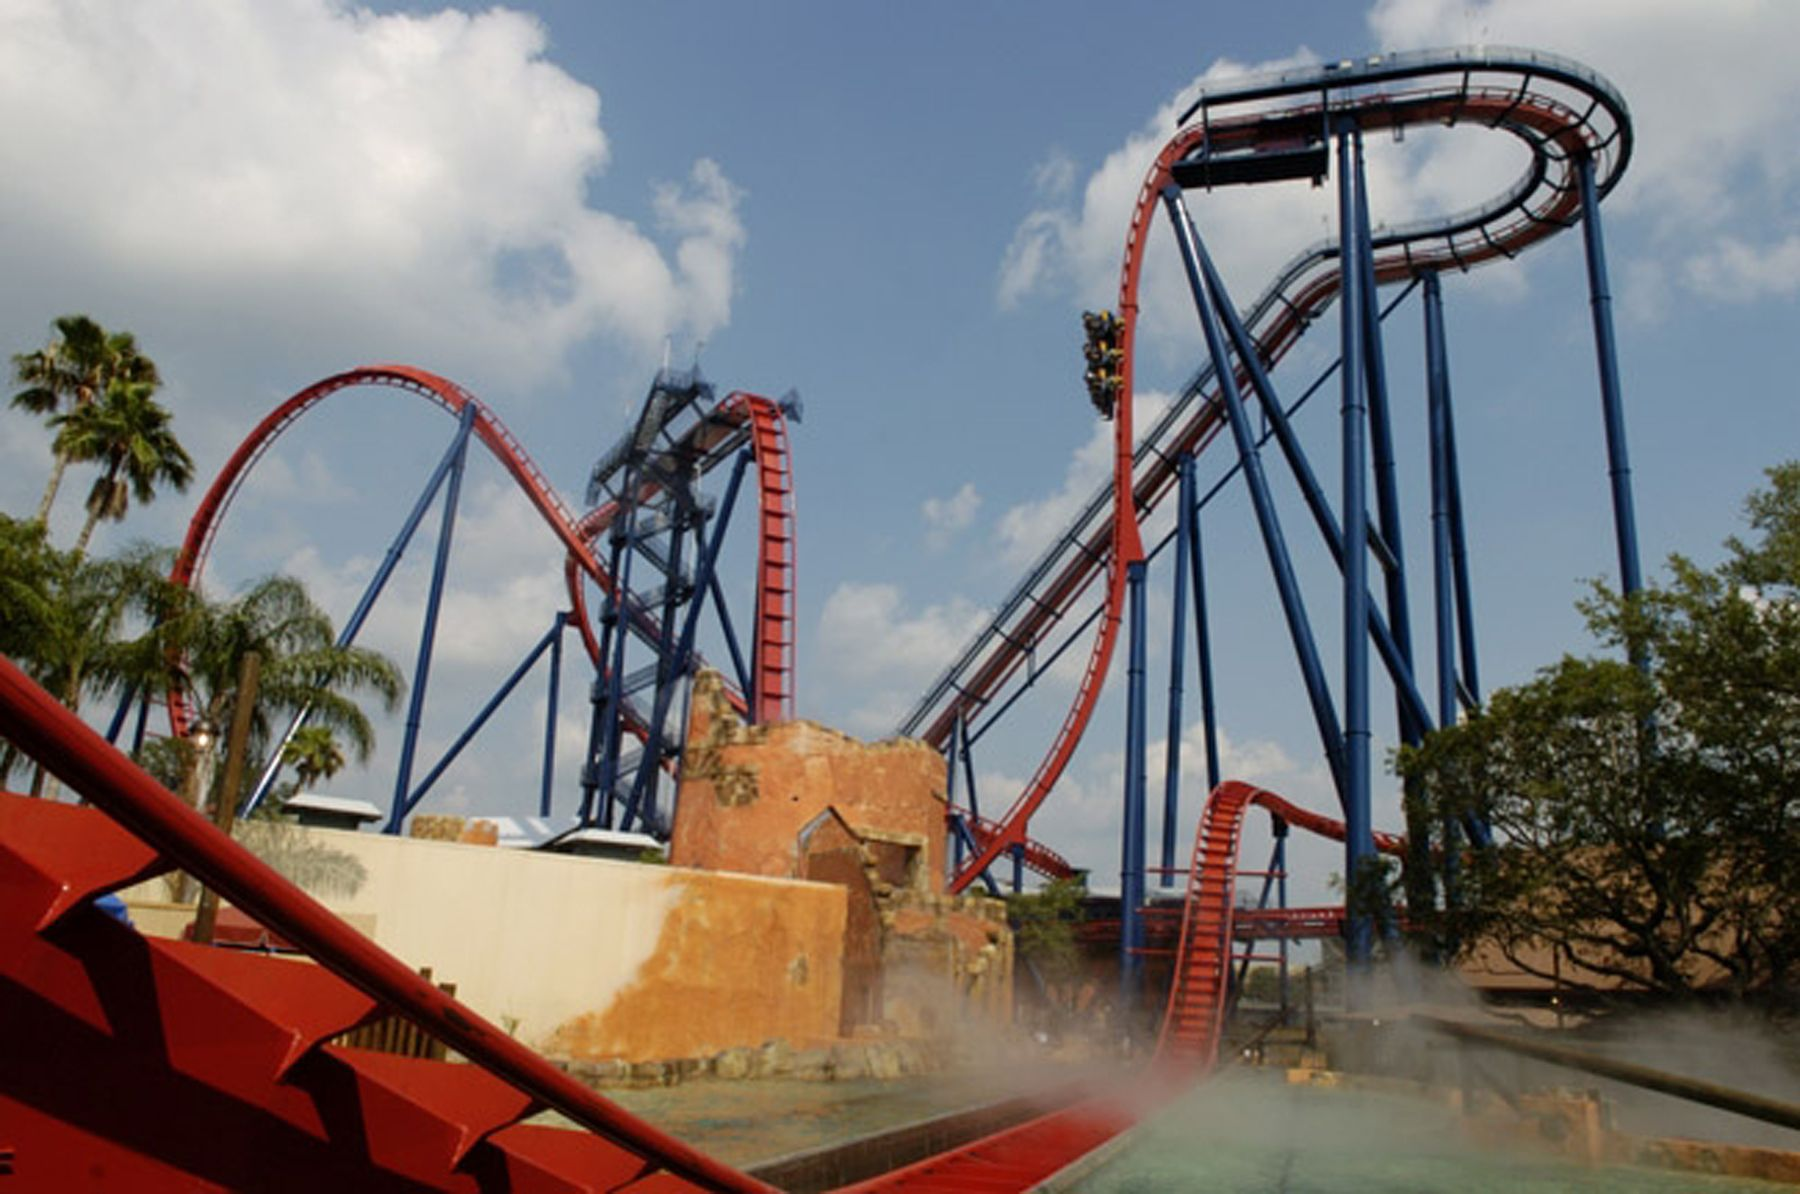 Roler coaster at busch gardens in clearwater fl - Roller coasters at busch gardens ...